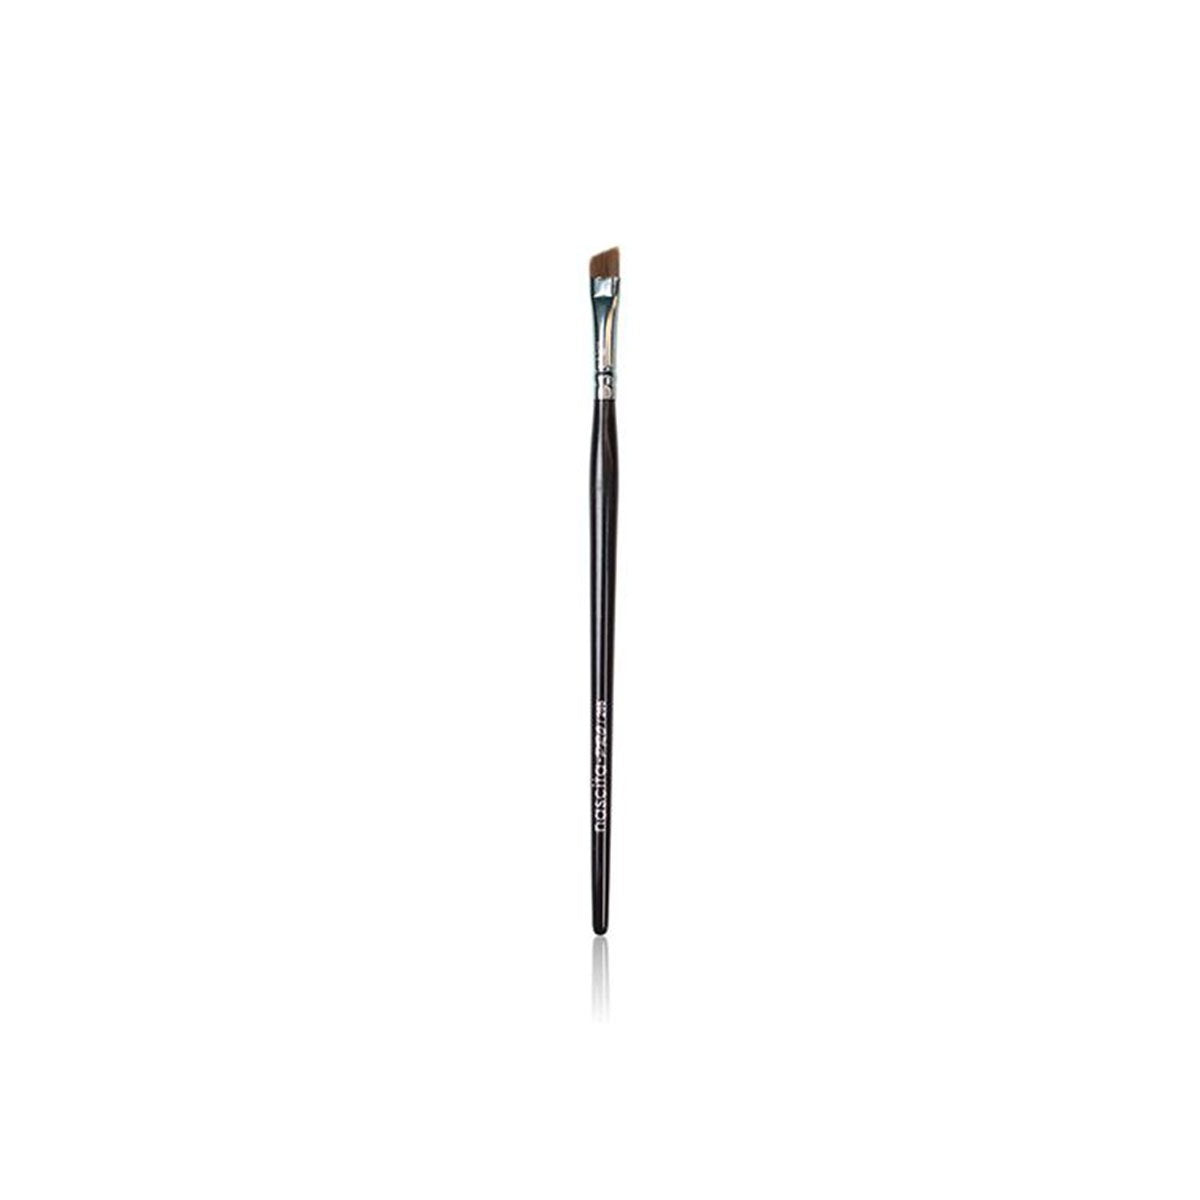 Nascita Do Pro Brush - Angled Eyeliner